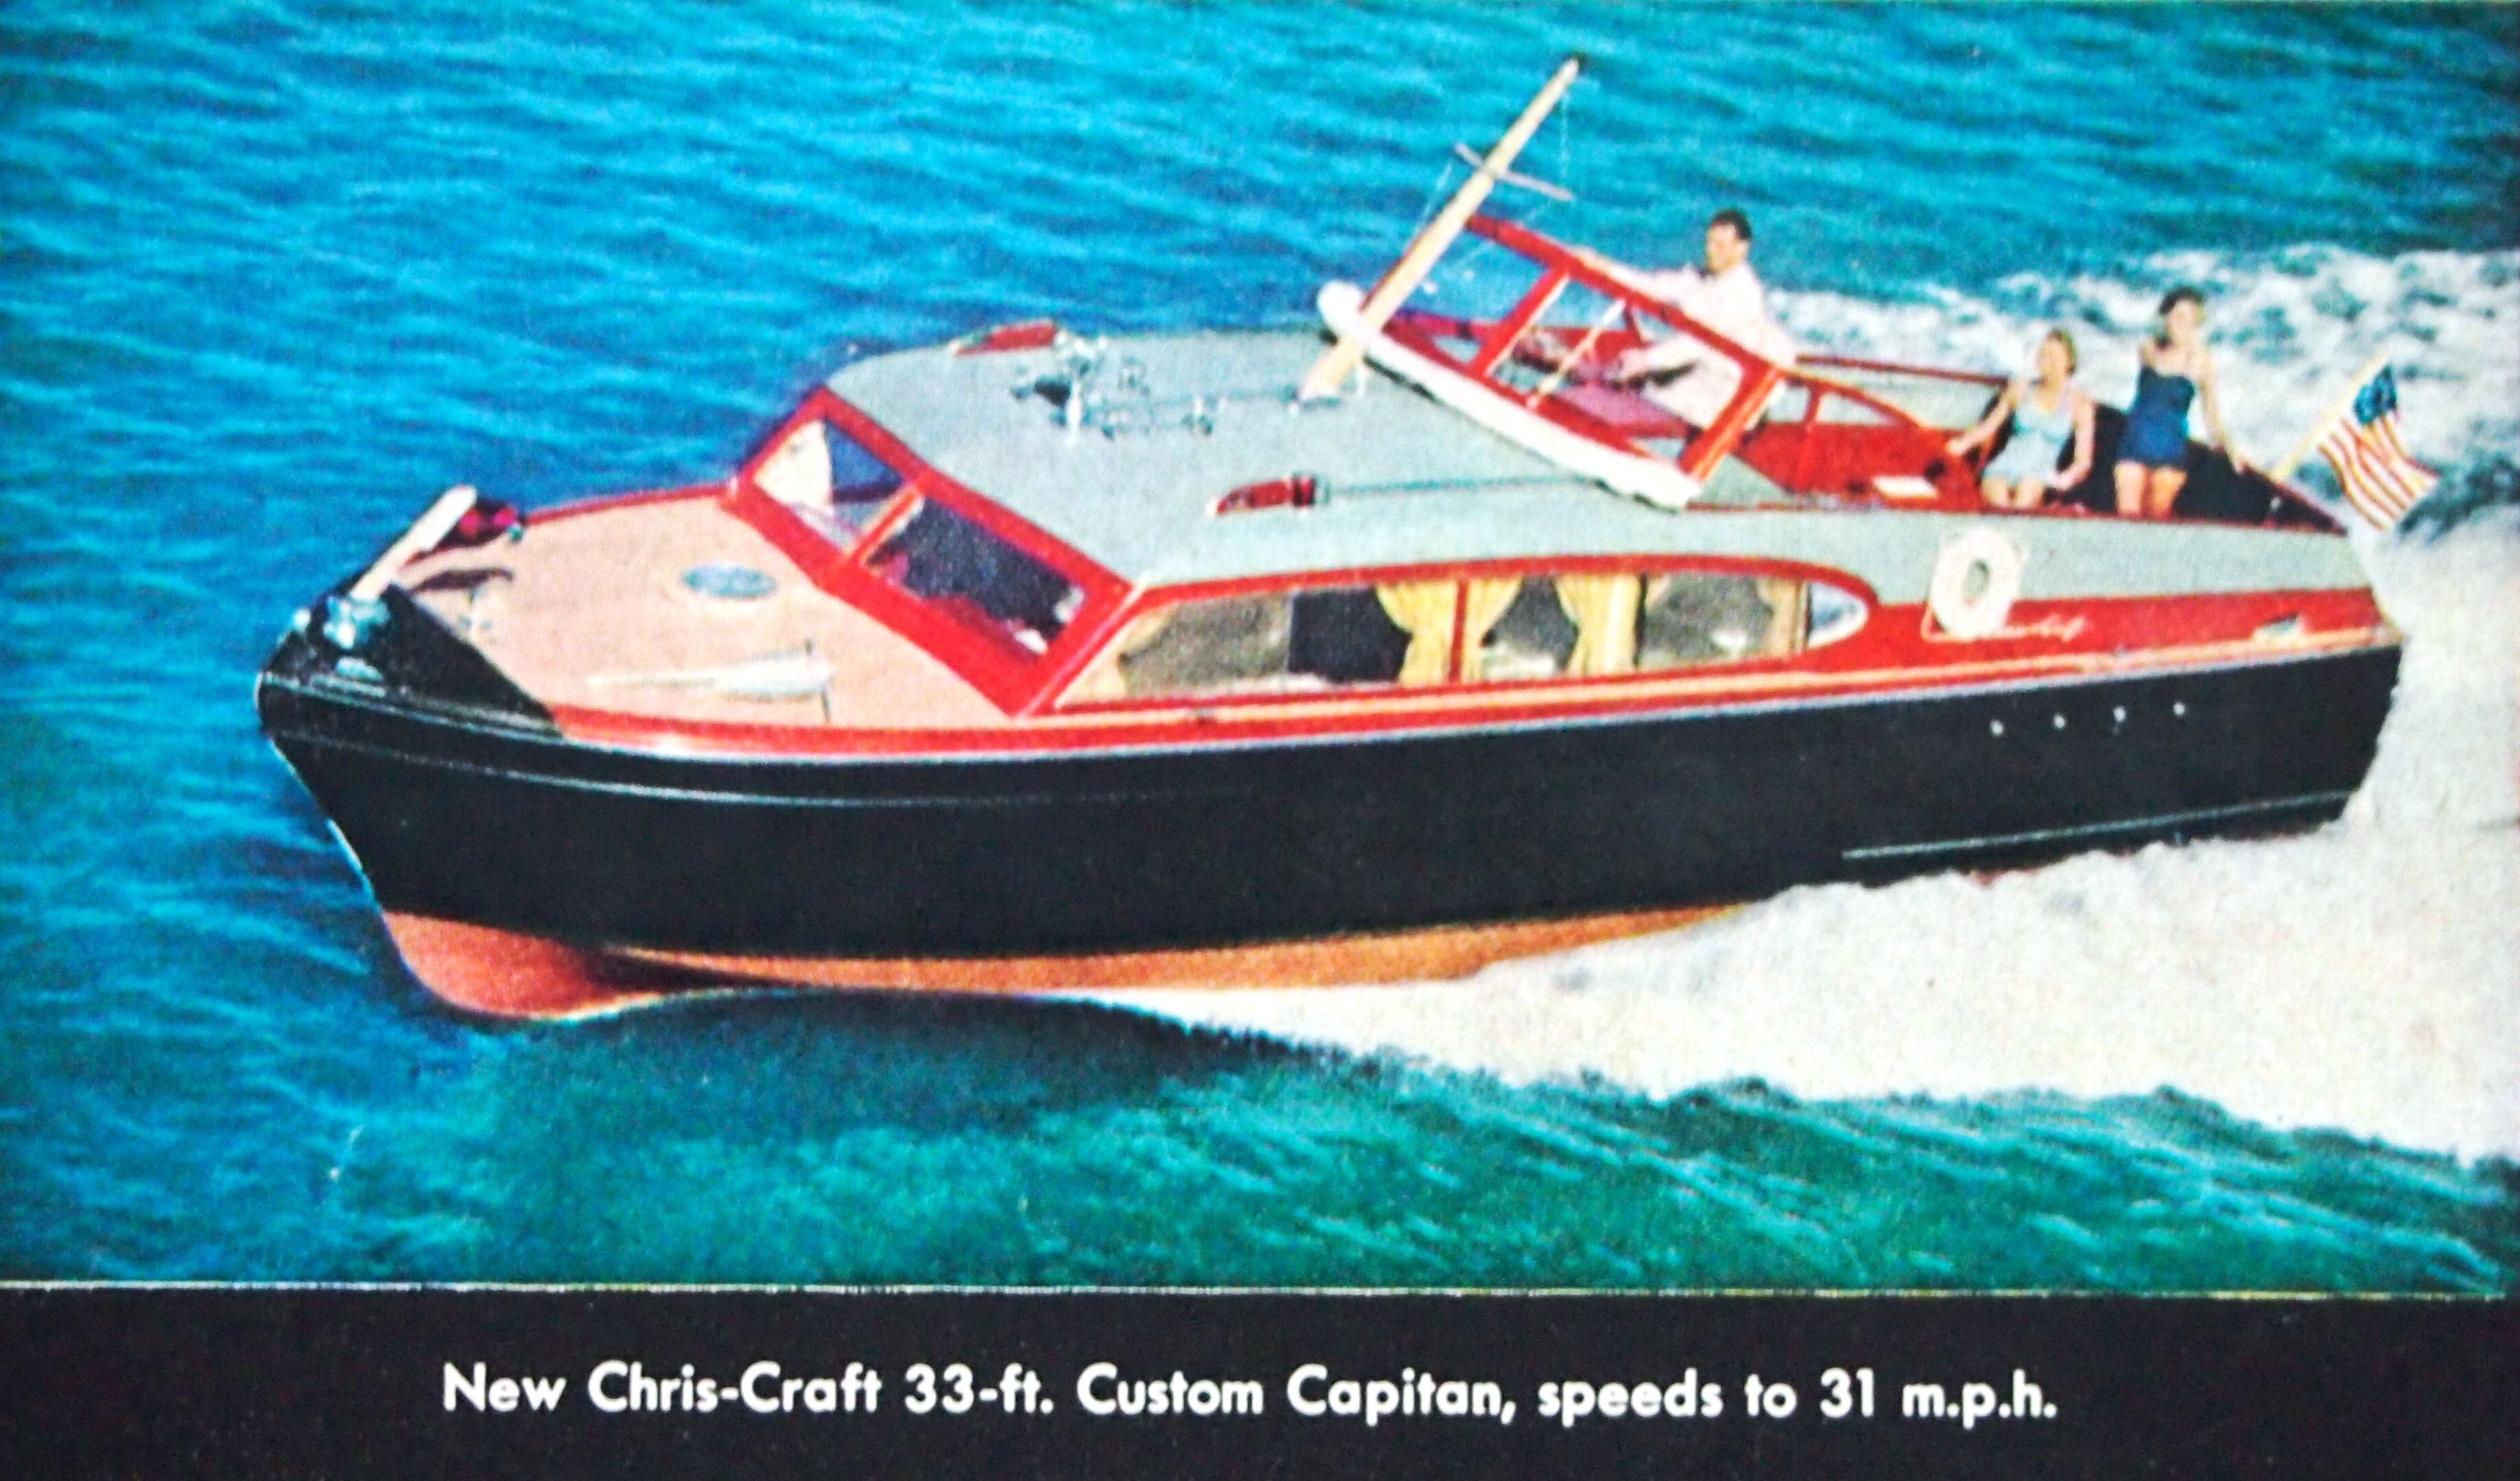 70da6cd59066daa6db7543daee412f80 1954 45' chris craft corsair ad with specs chris craft motor Chris Craft Commander Electrical Wiring at bakdesigns.co